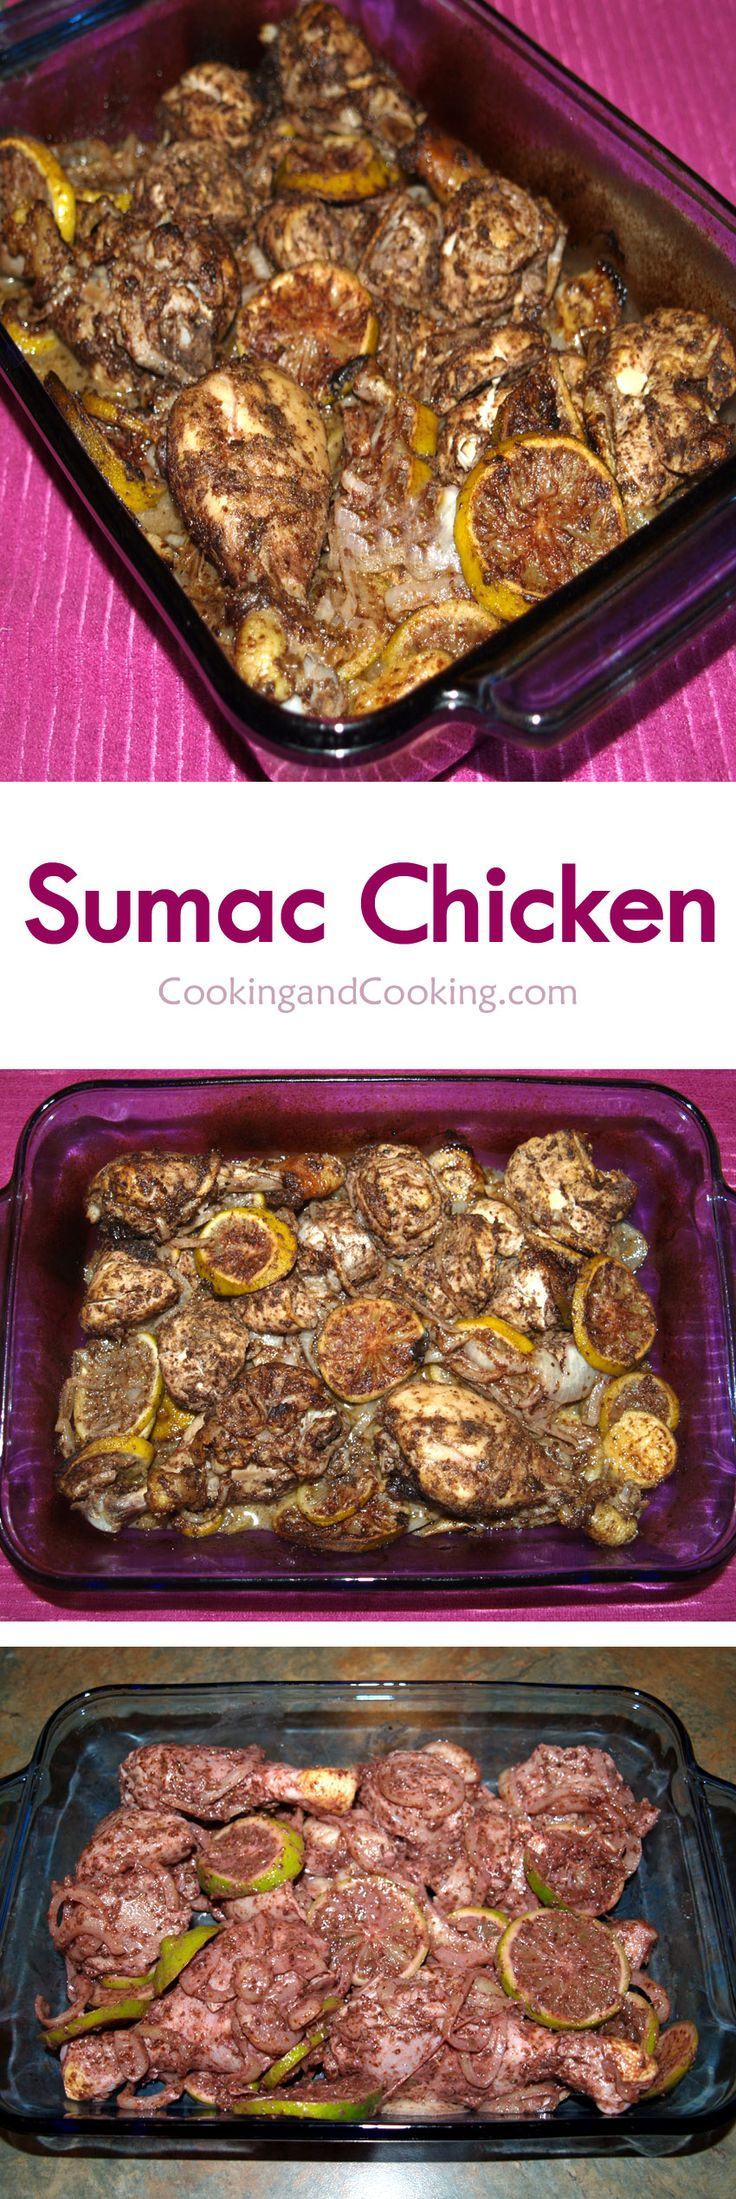 Sumac Chicken recipe is a simple chicken dish using sumac. Just marinate the chicken with sumac, lime, garlic, olive oil, oregano and allspice over night and bake.